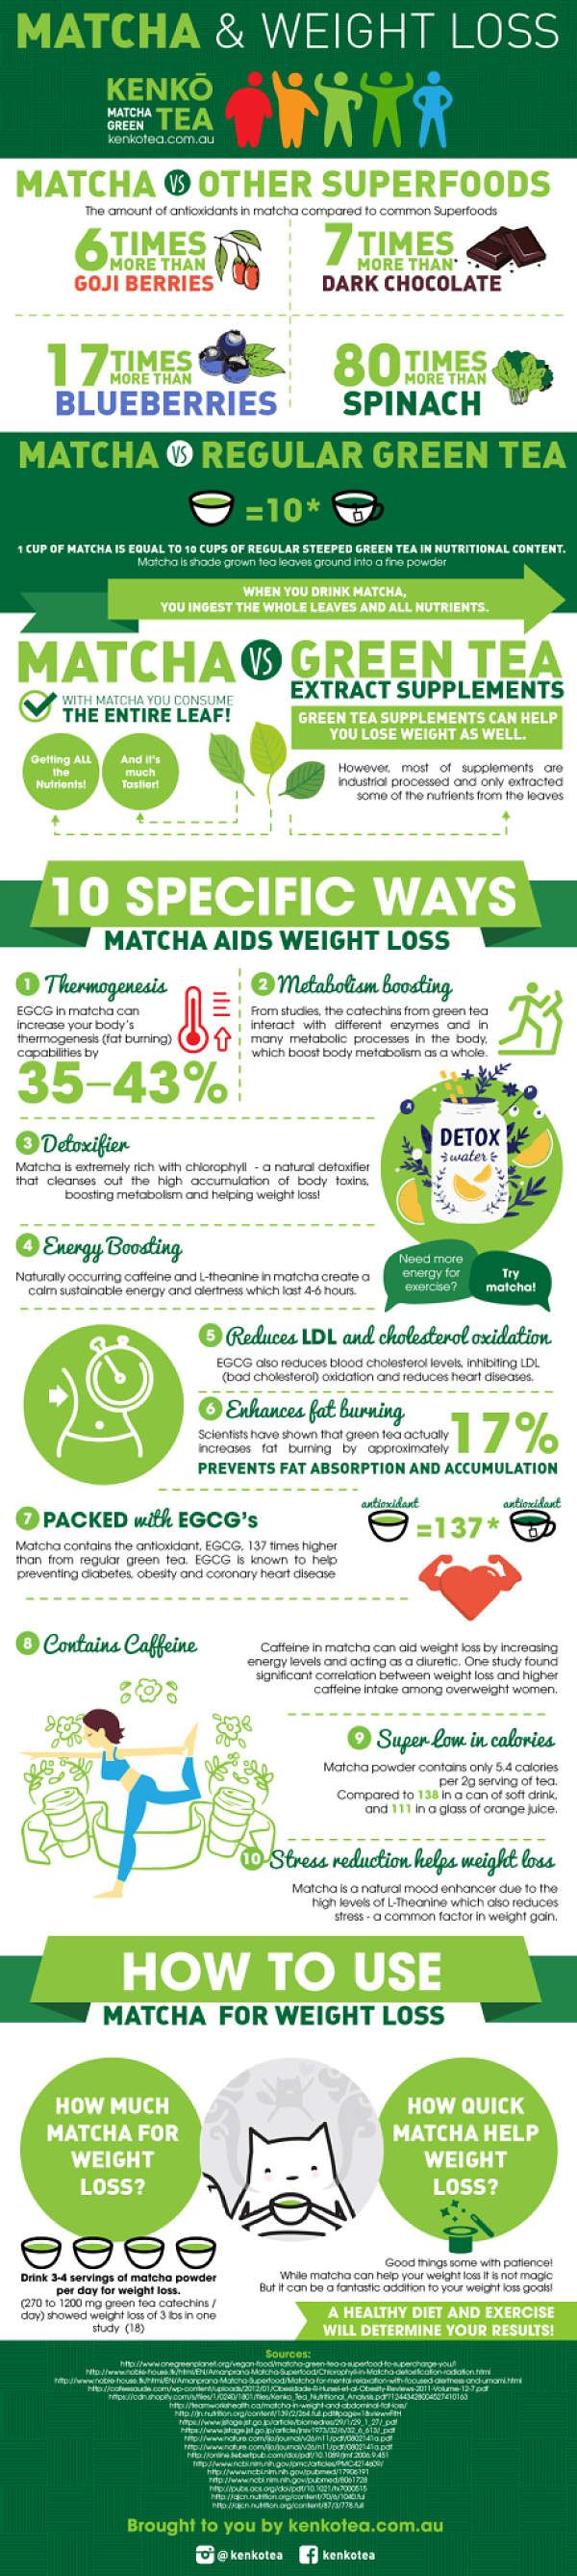 Matcha Green Tea health Benefits Infographic. Get your matcha at: amzn.to/297Wux...